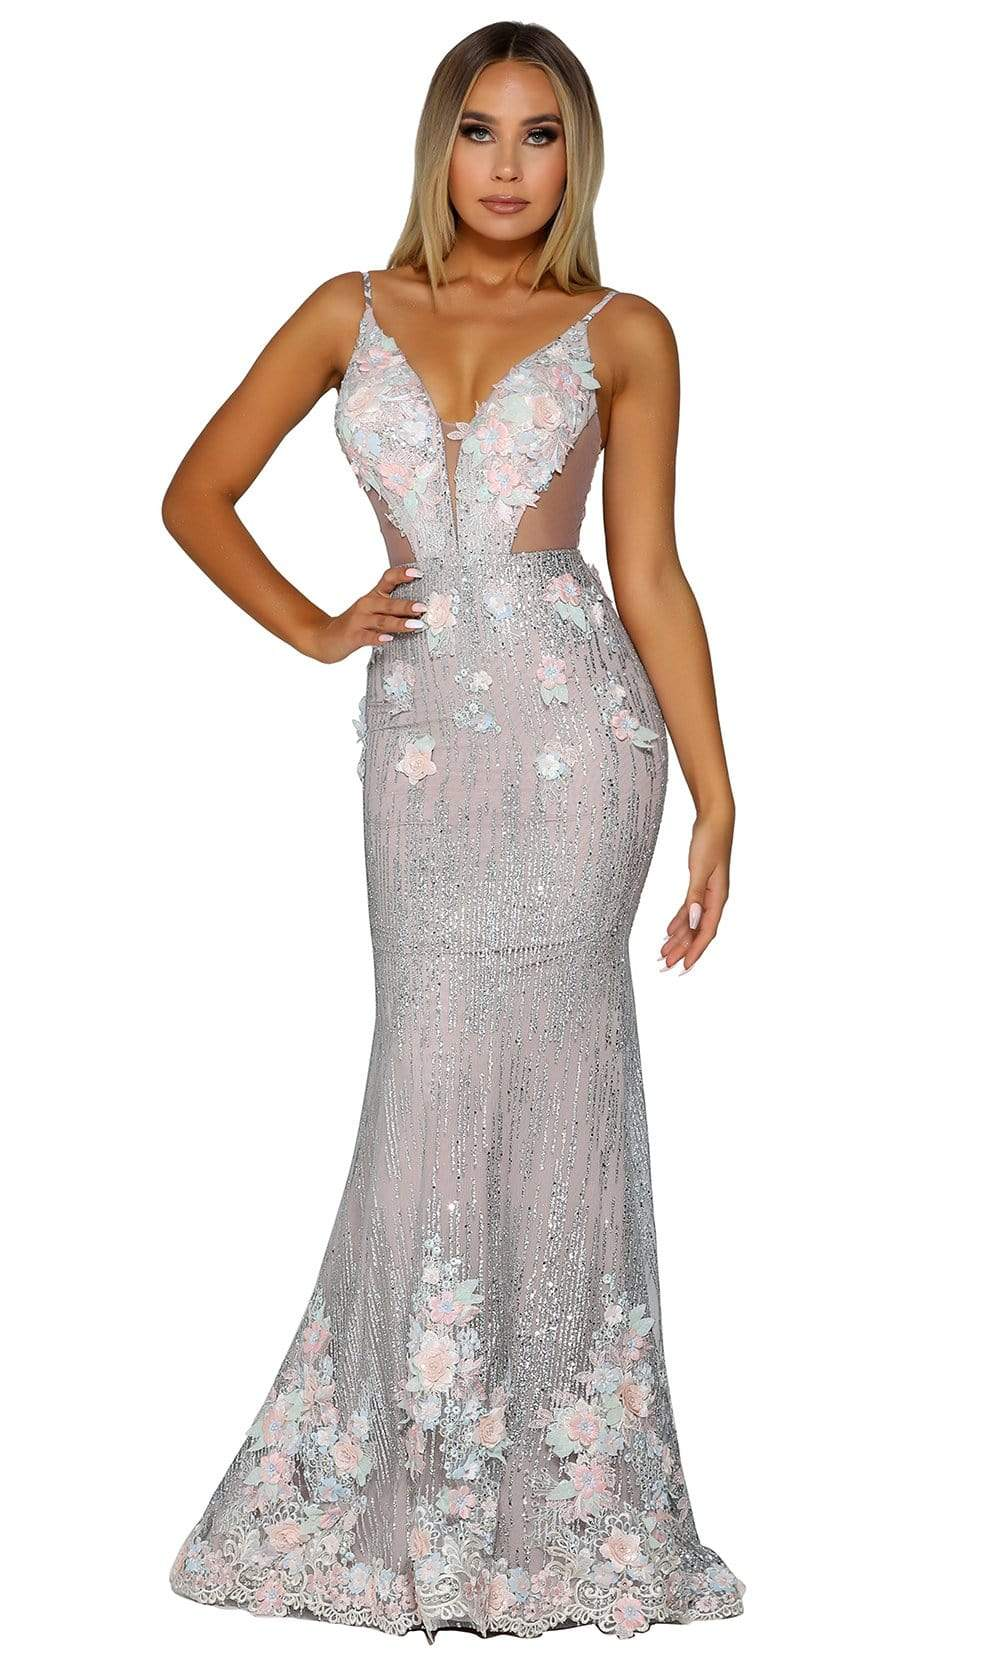 Portia and Scarlett - PS6098 Plunging Floral Appliqued Mermaid Gown from Portia and Scarlett